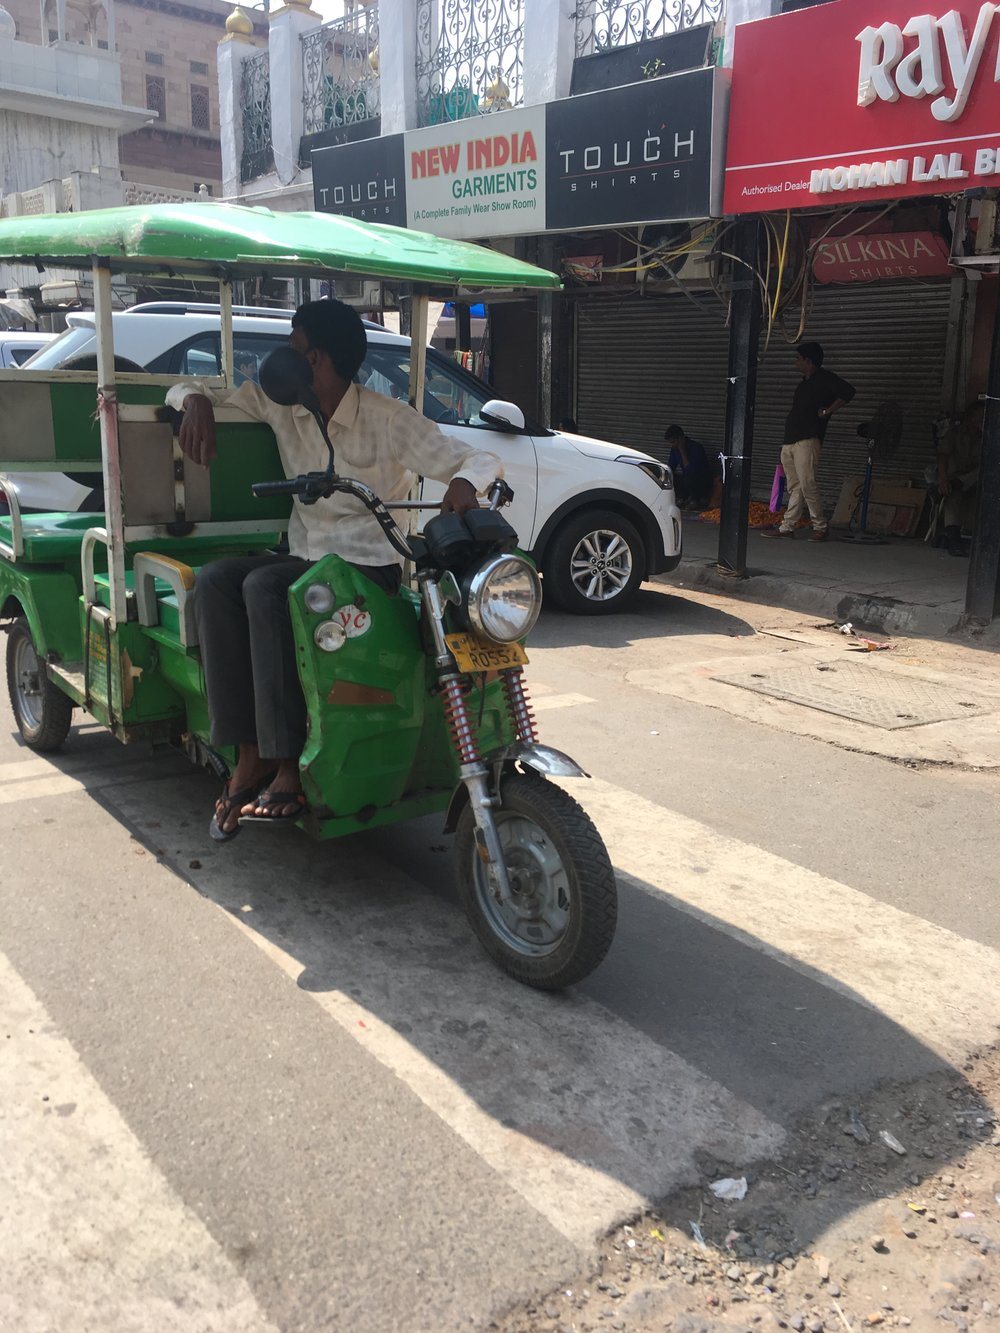 An e-rikshaw. This is a shared rickshaw that usually goes for Rs 10 per seat.